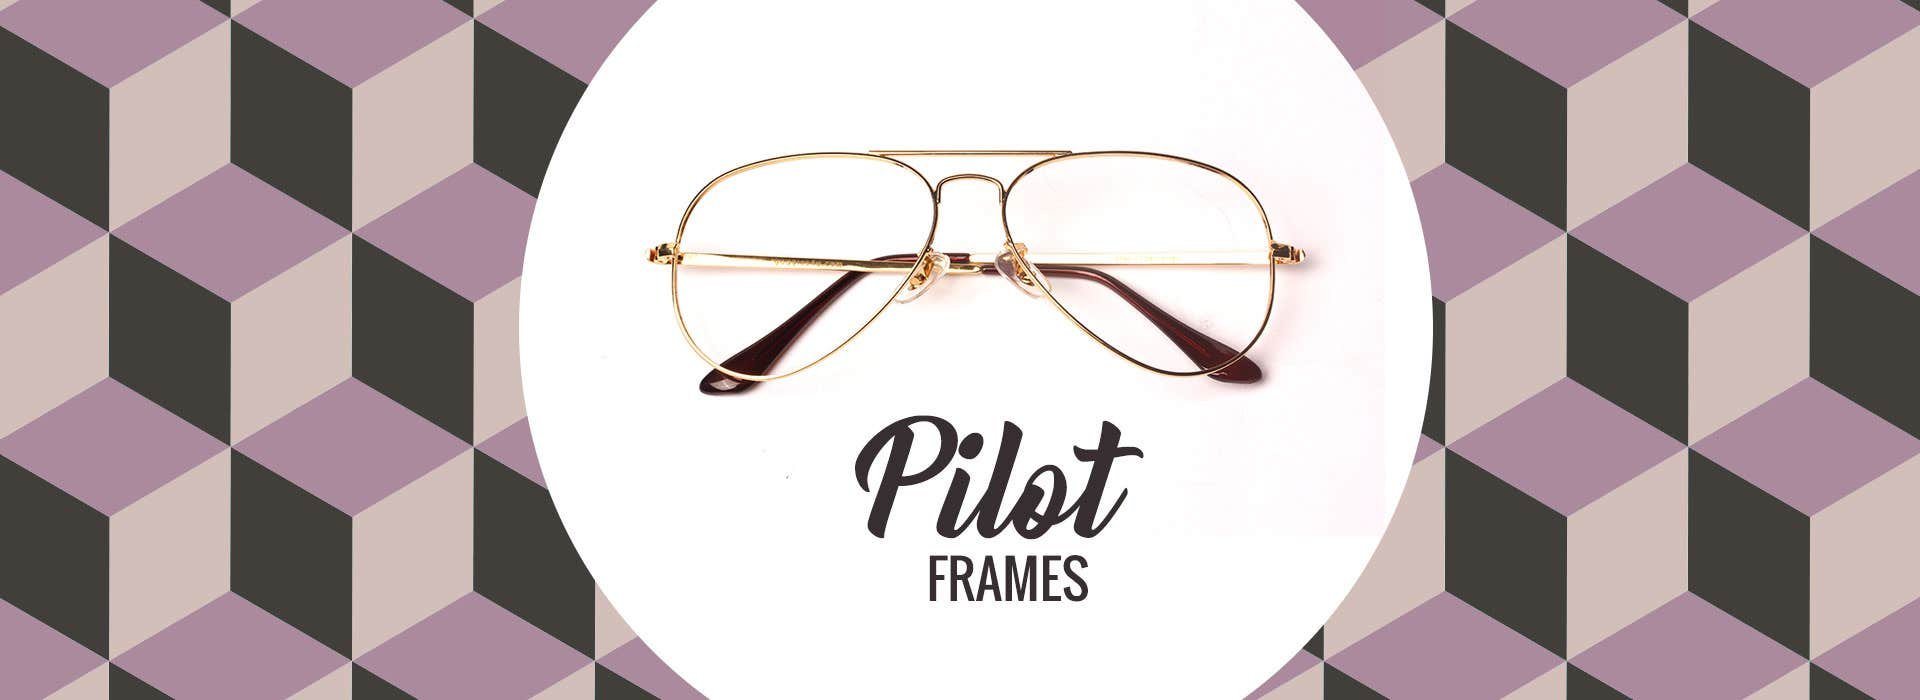 Buy Pilot eyeglasses at Goggles4u